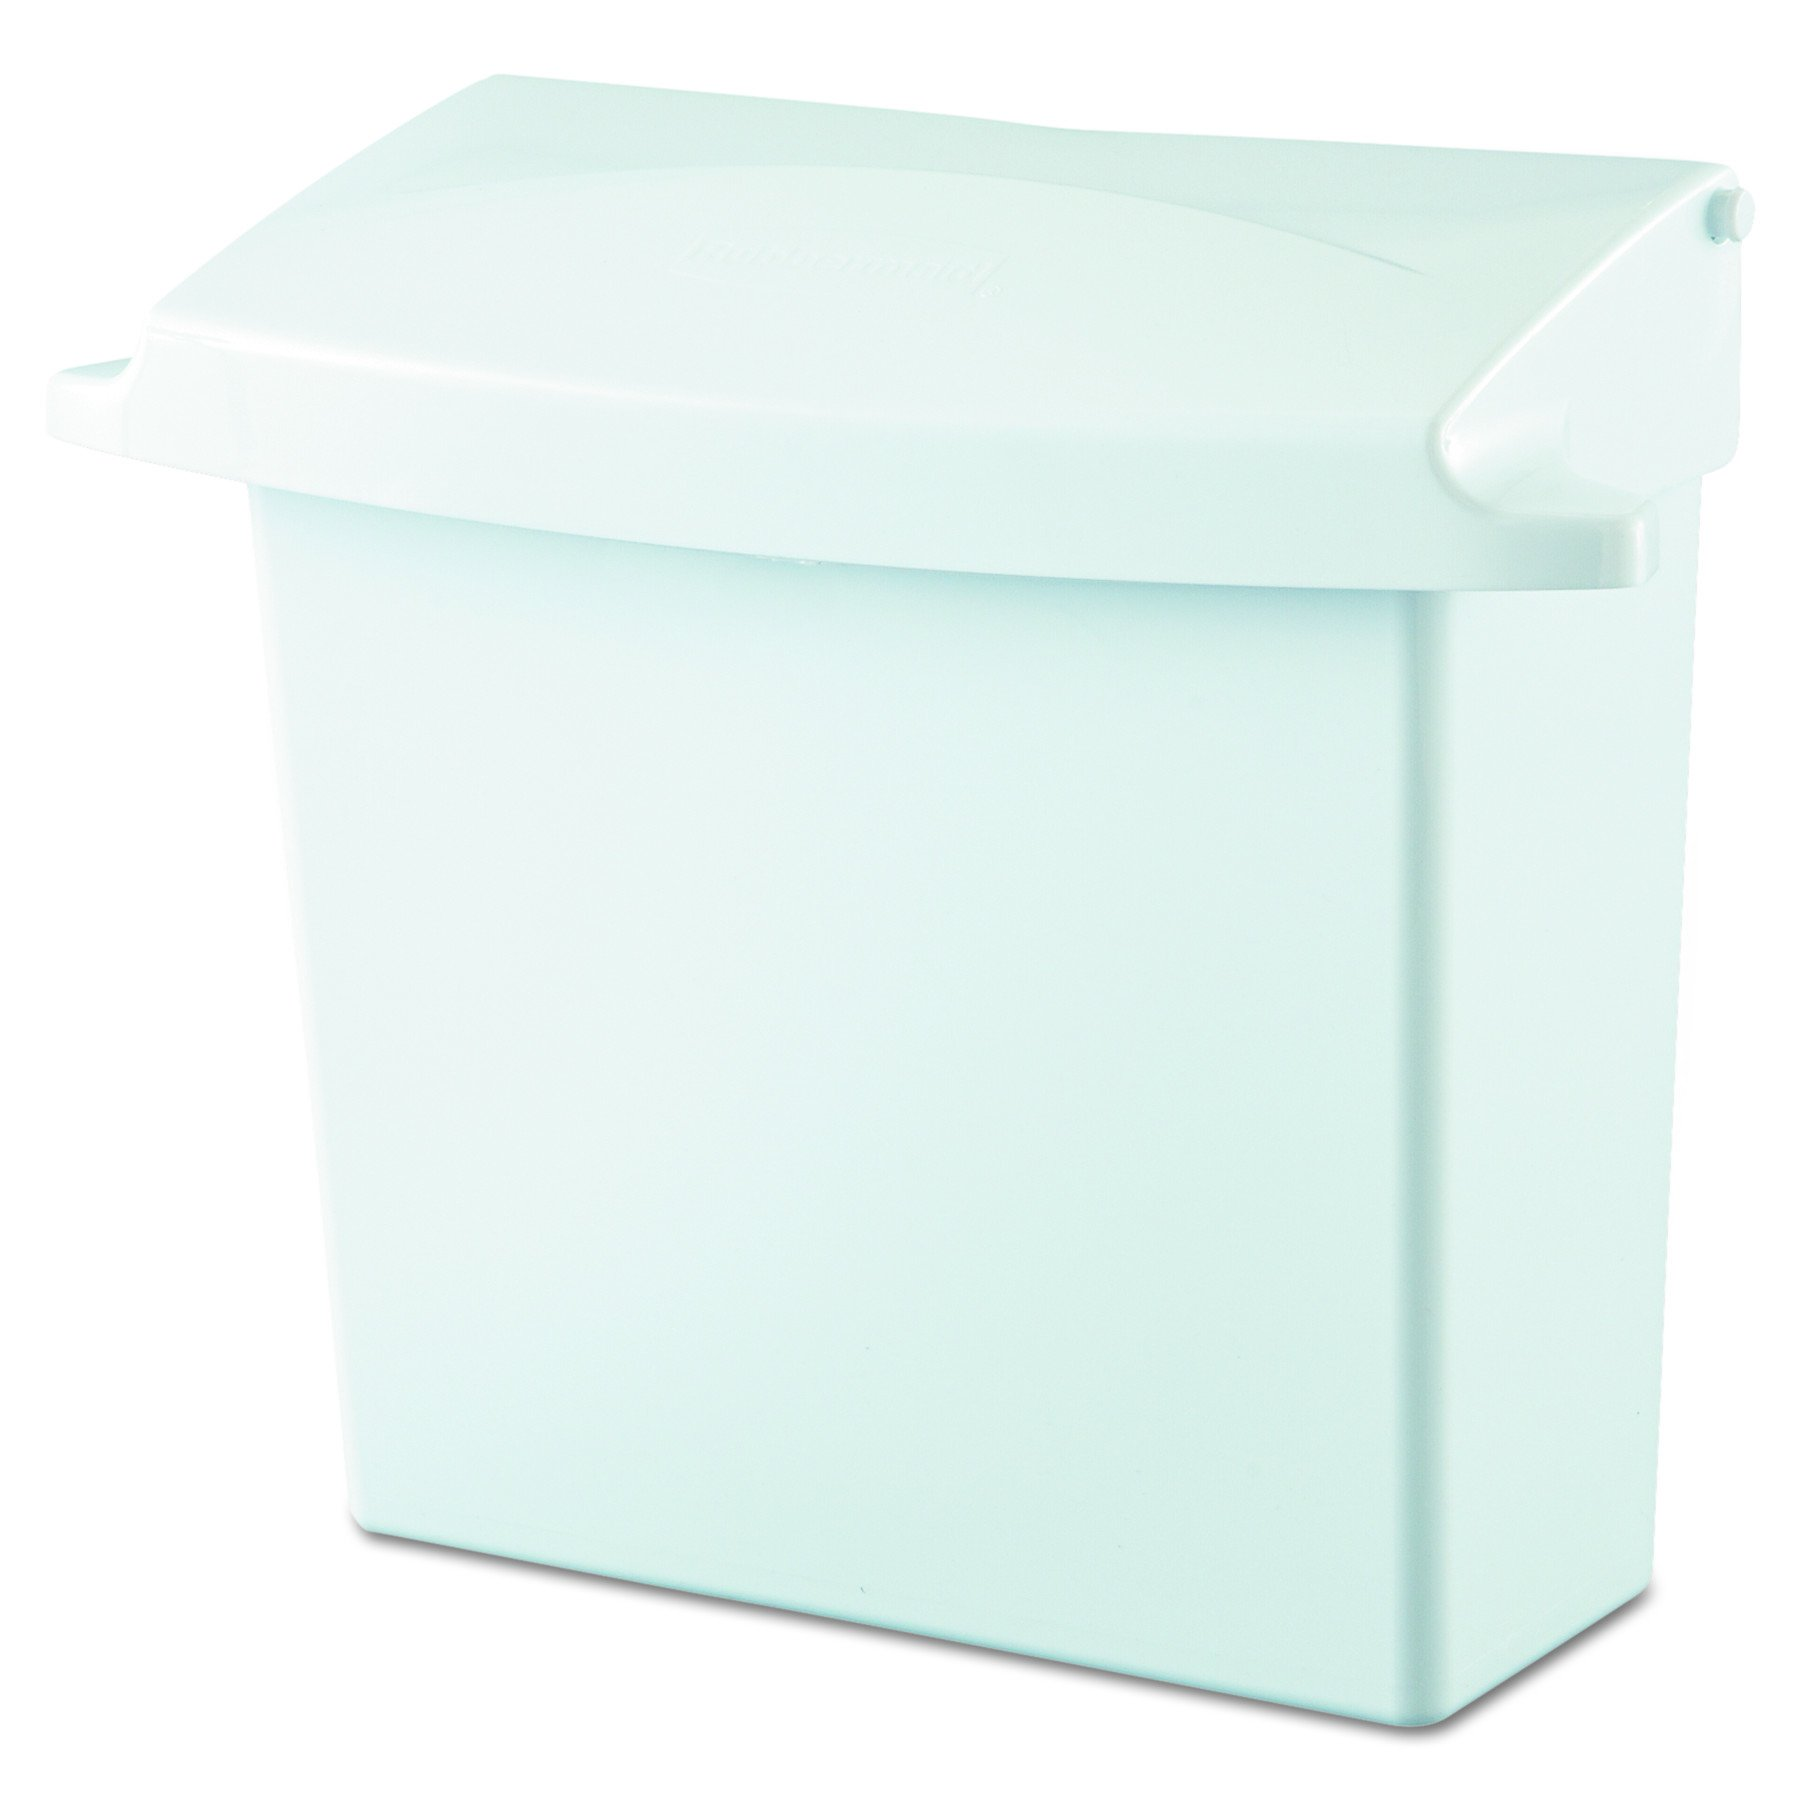 Rubbermaid Commercial 614000 Sanitary Napkin Receptacle with Rigid Liner, Rectangular, Plastic, White by Rubbermaid Commercial Products